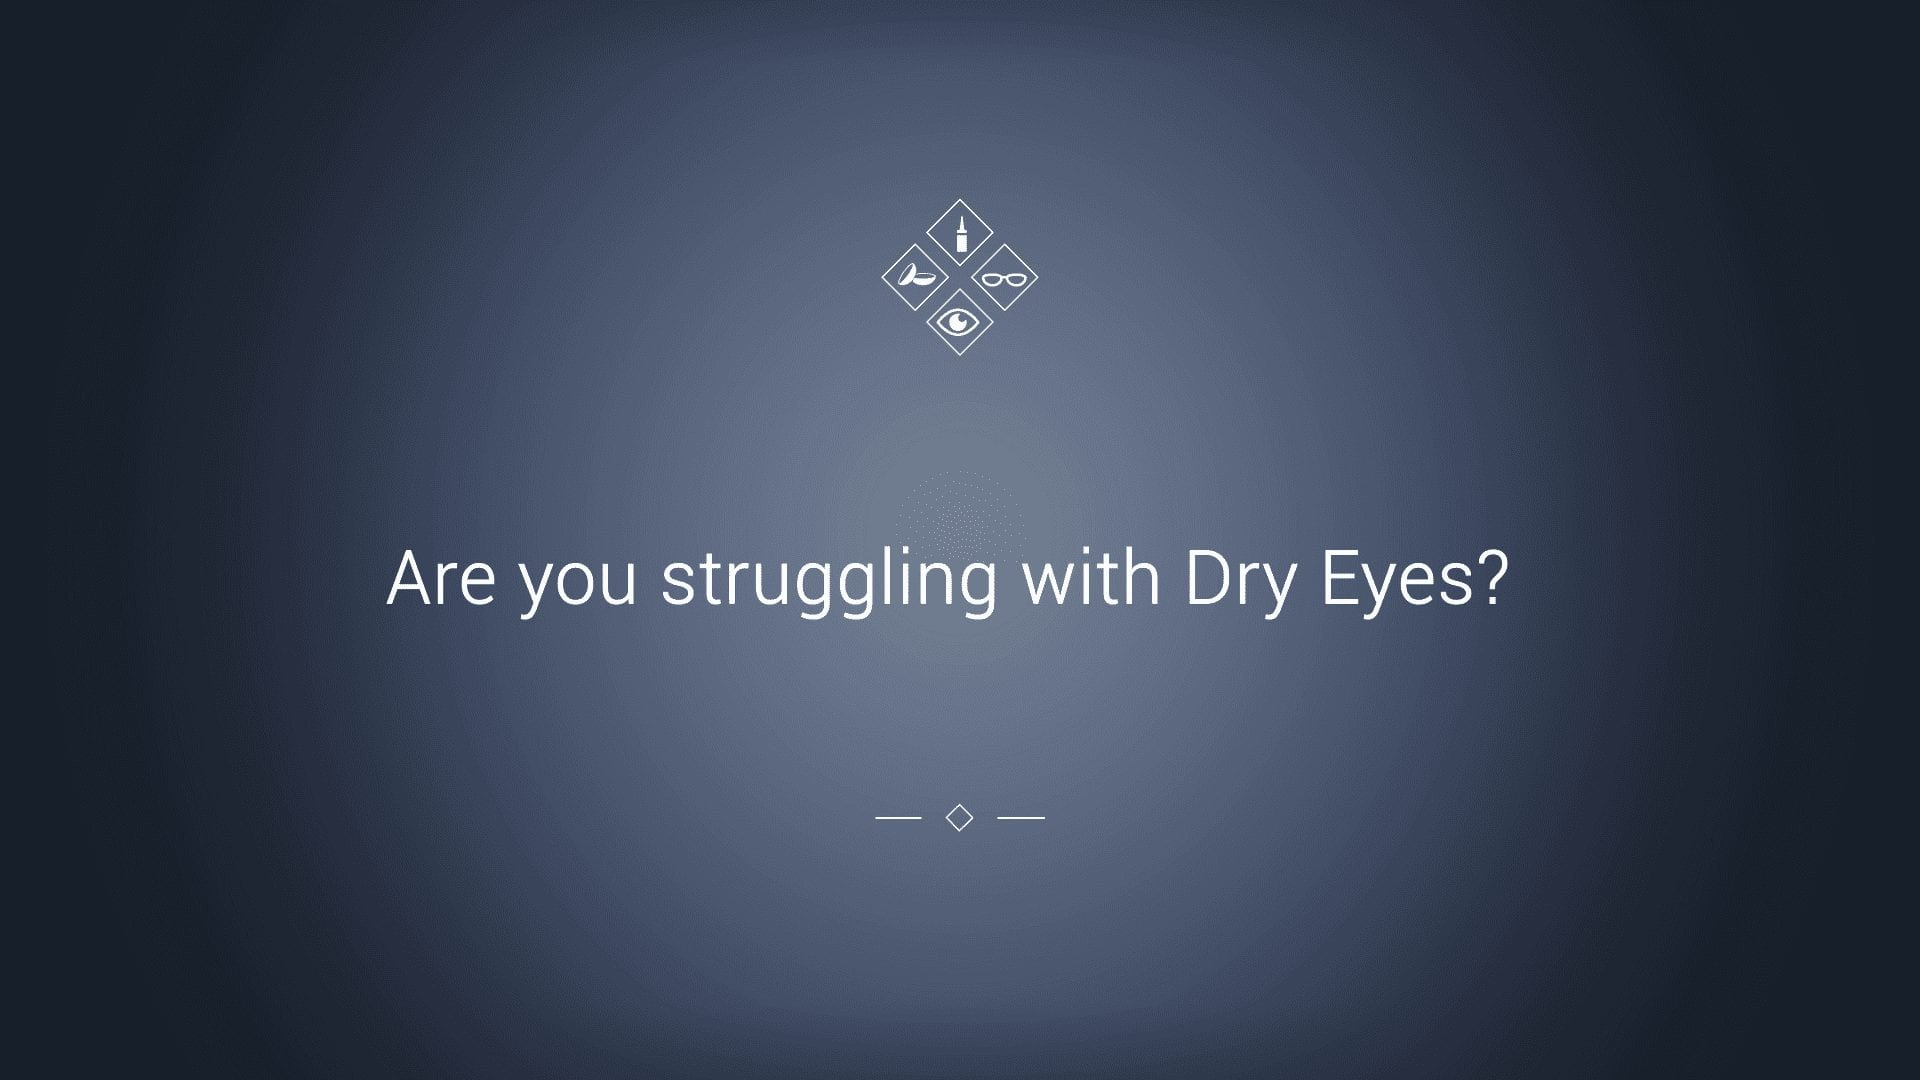 Dry eyes optical content libary